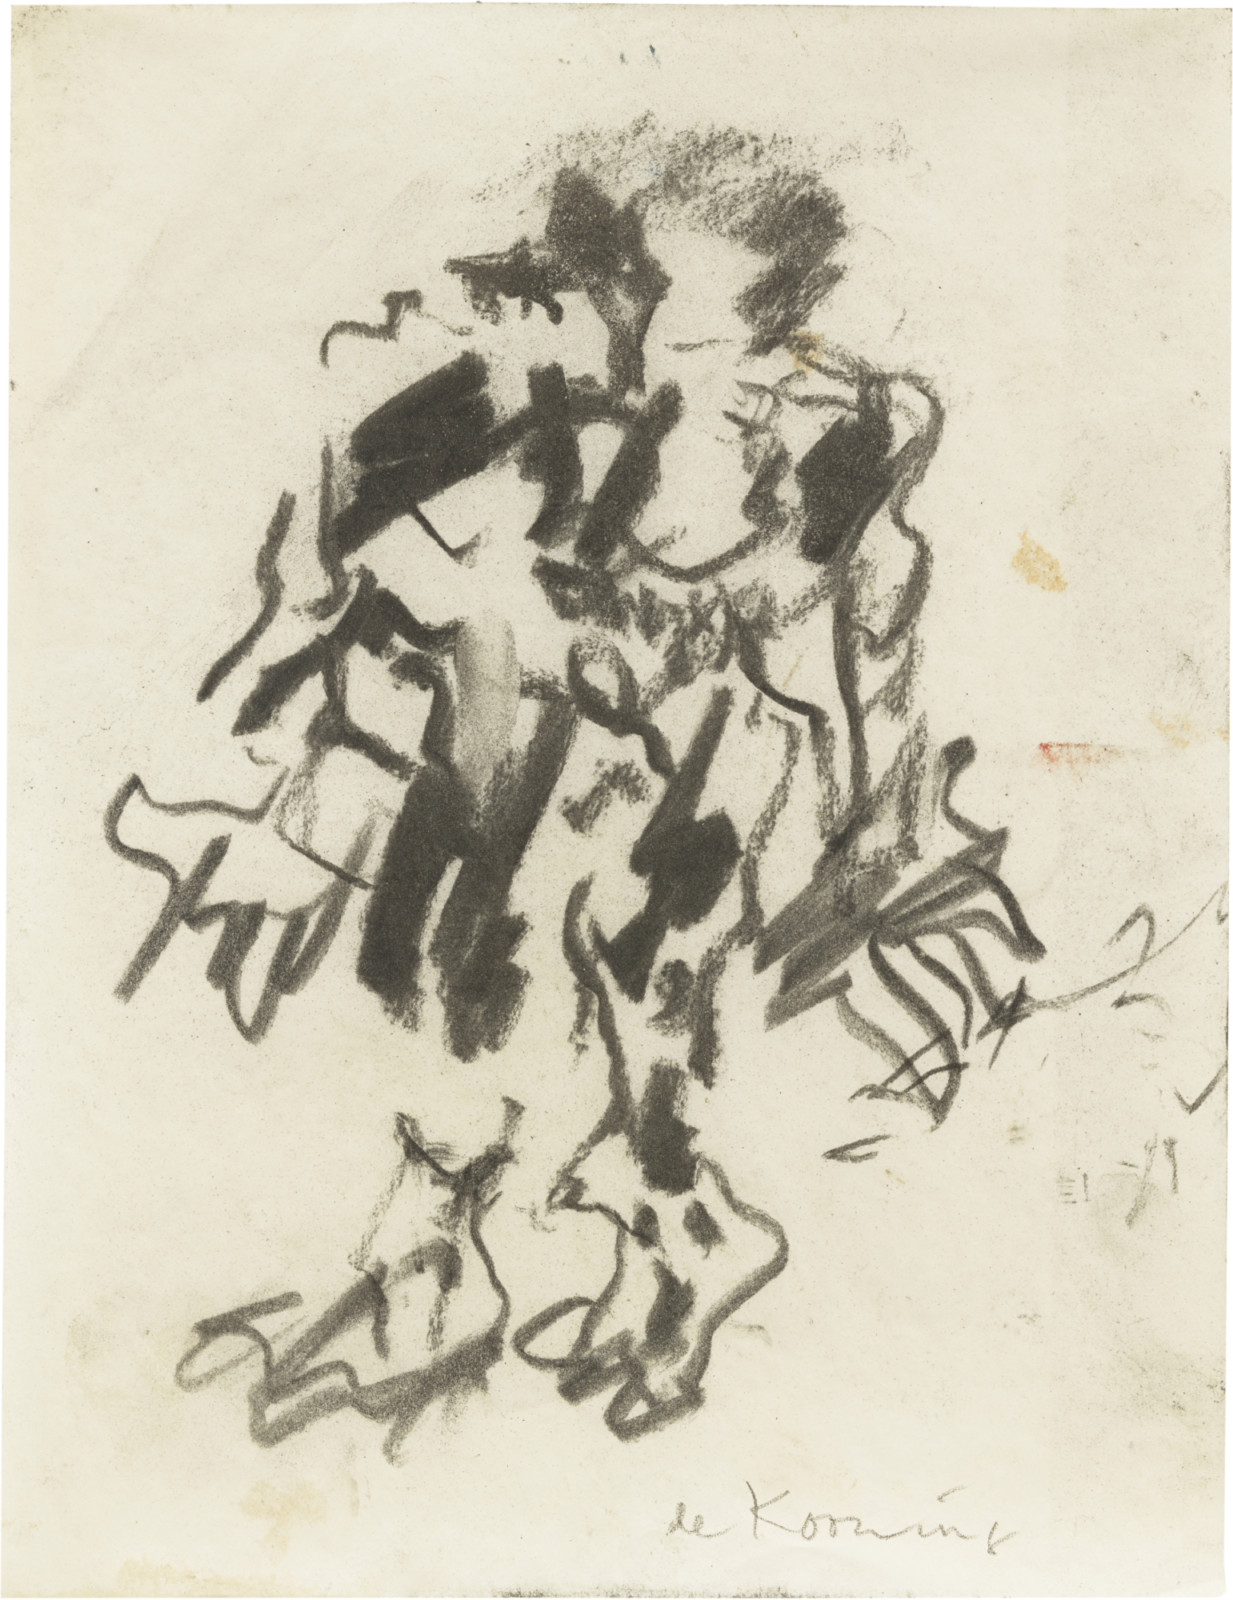 Drawing, dated c. 1970